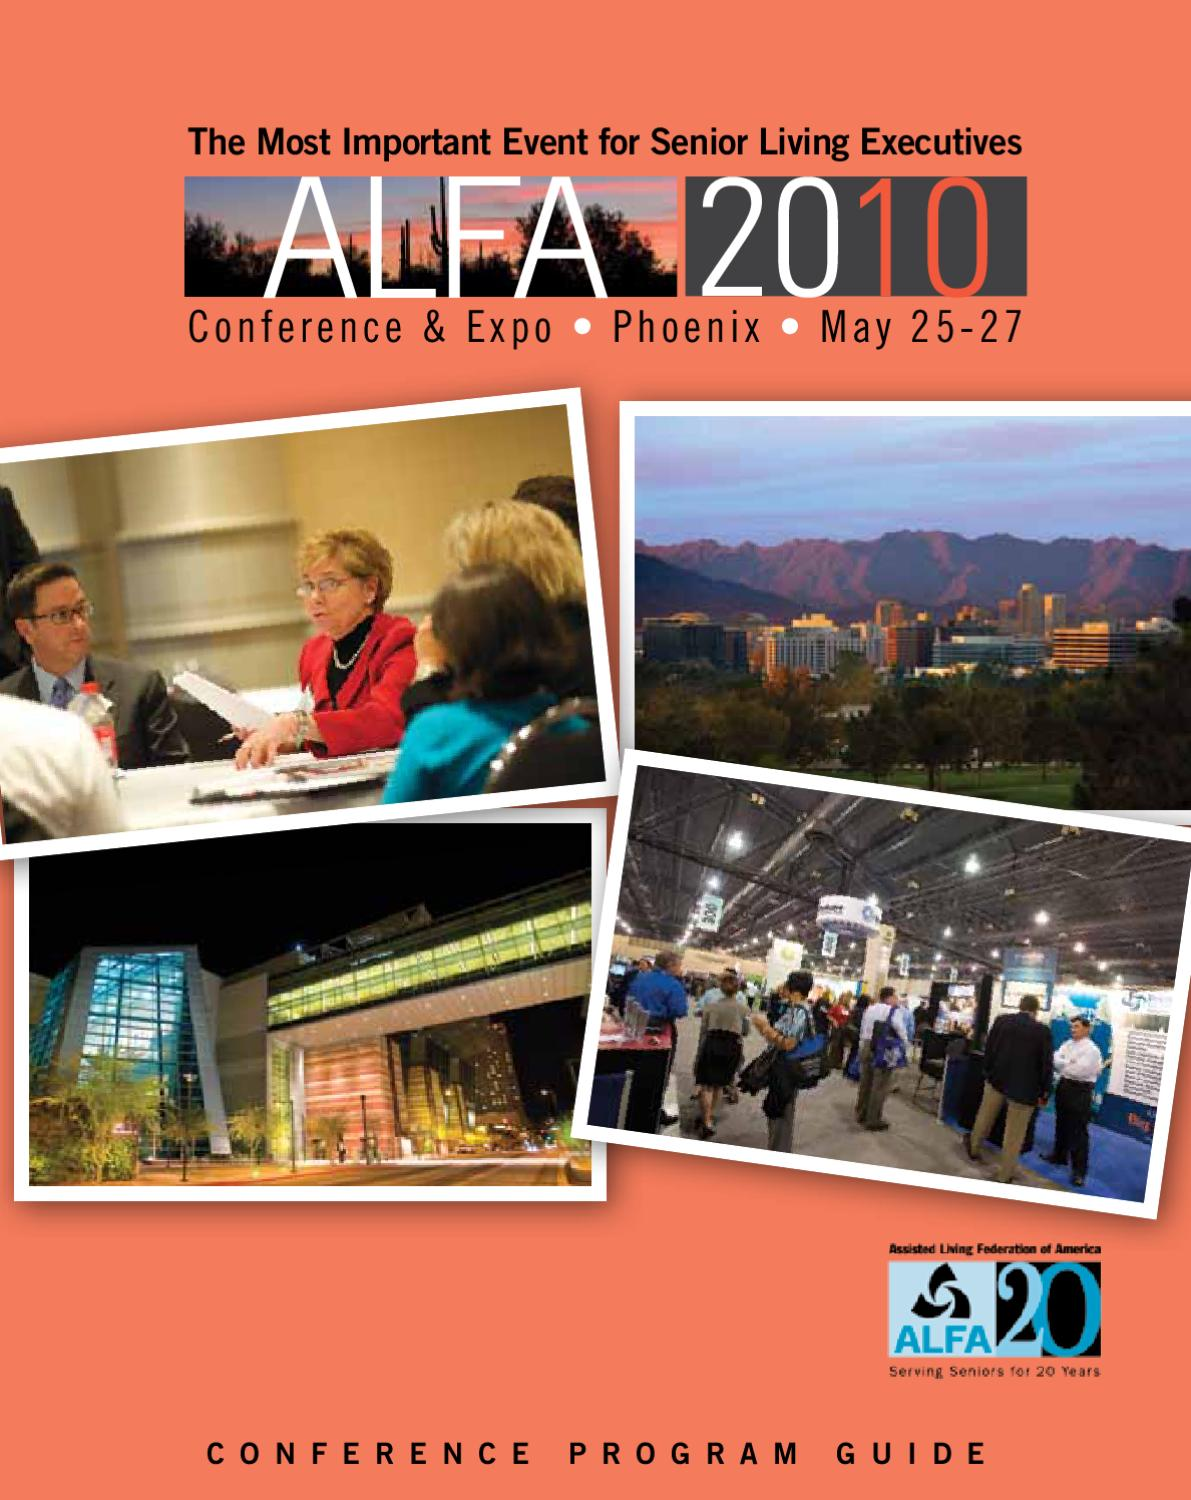 2010 Alfa Conference Amp Expo Program Guide By Content